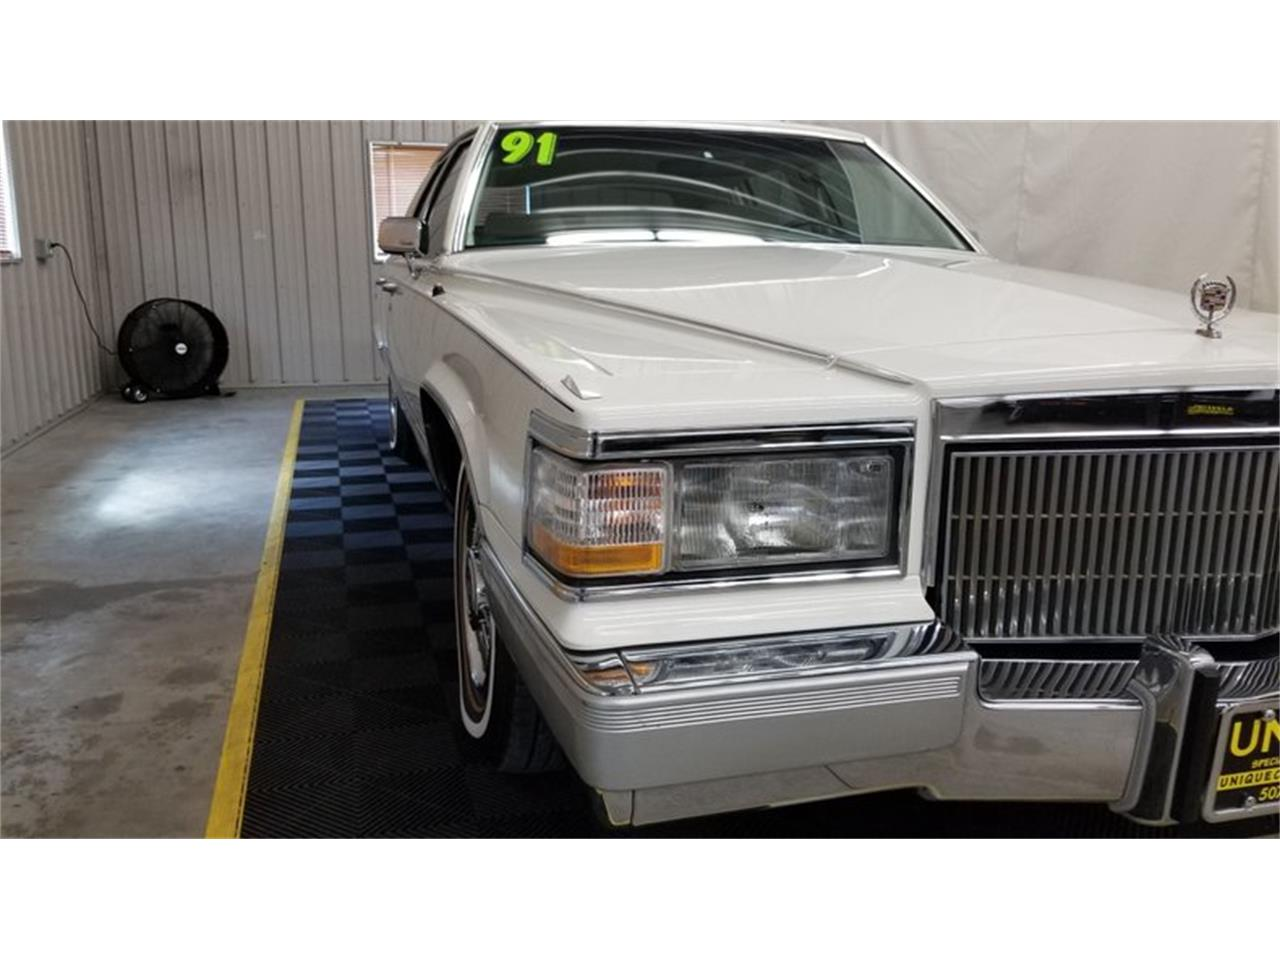 1991 Cadillac Brougham for sale in Mankato, MN – photo 7